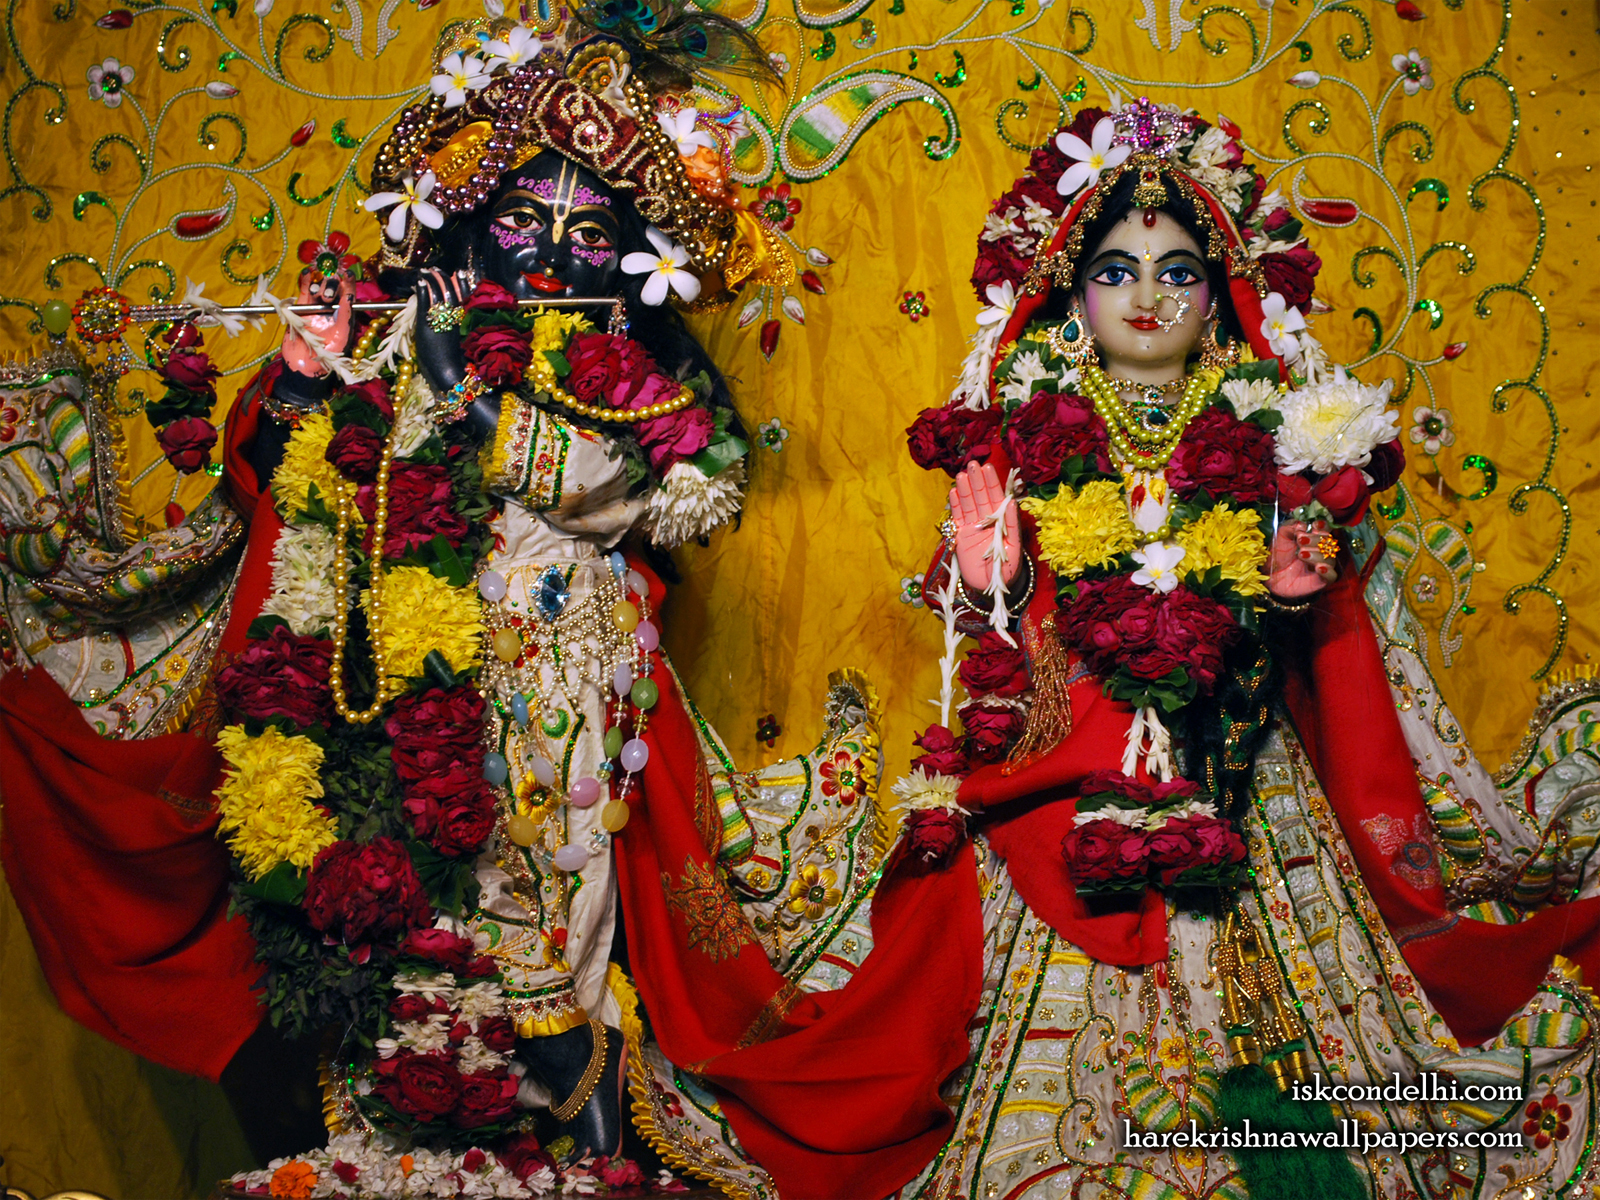 Sri Sri Radha Parthasarathi Wallpaper (004) Size1600x1200 Download